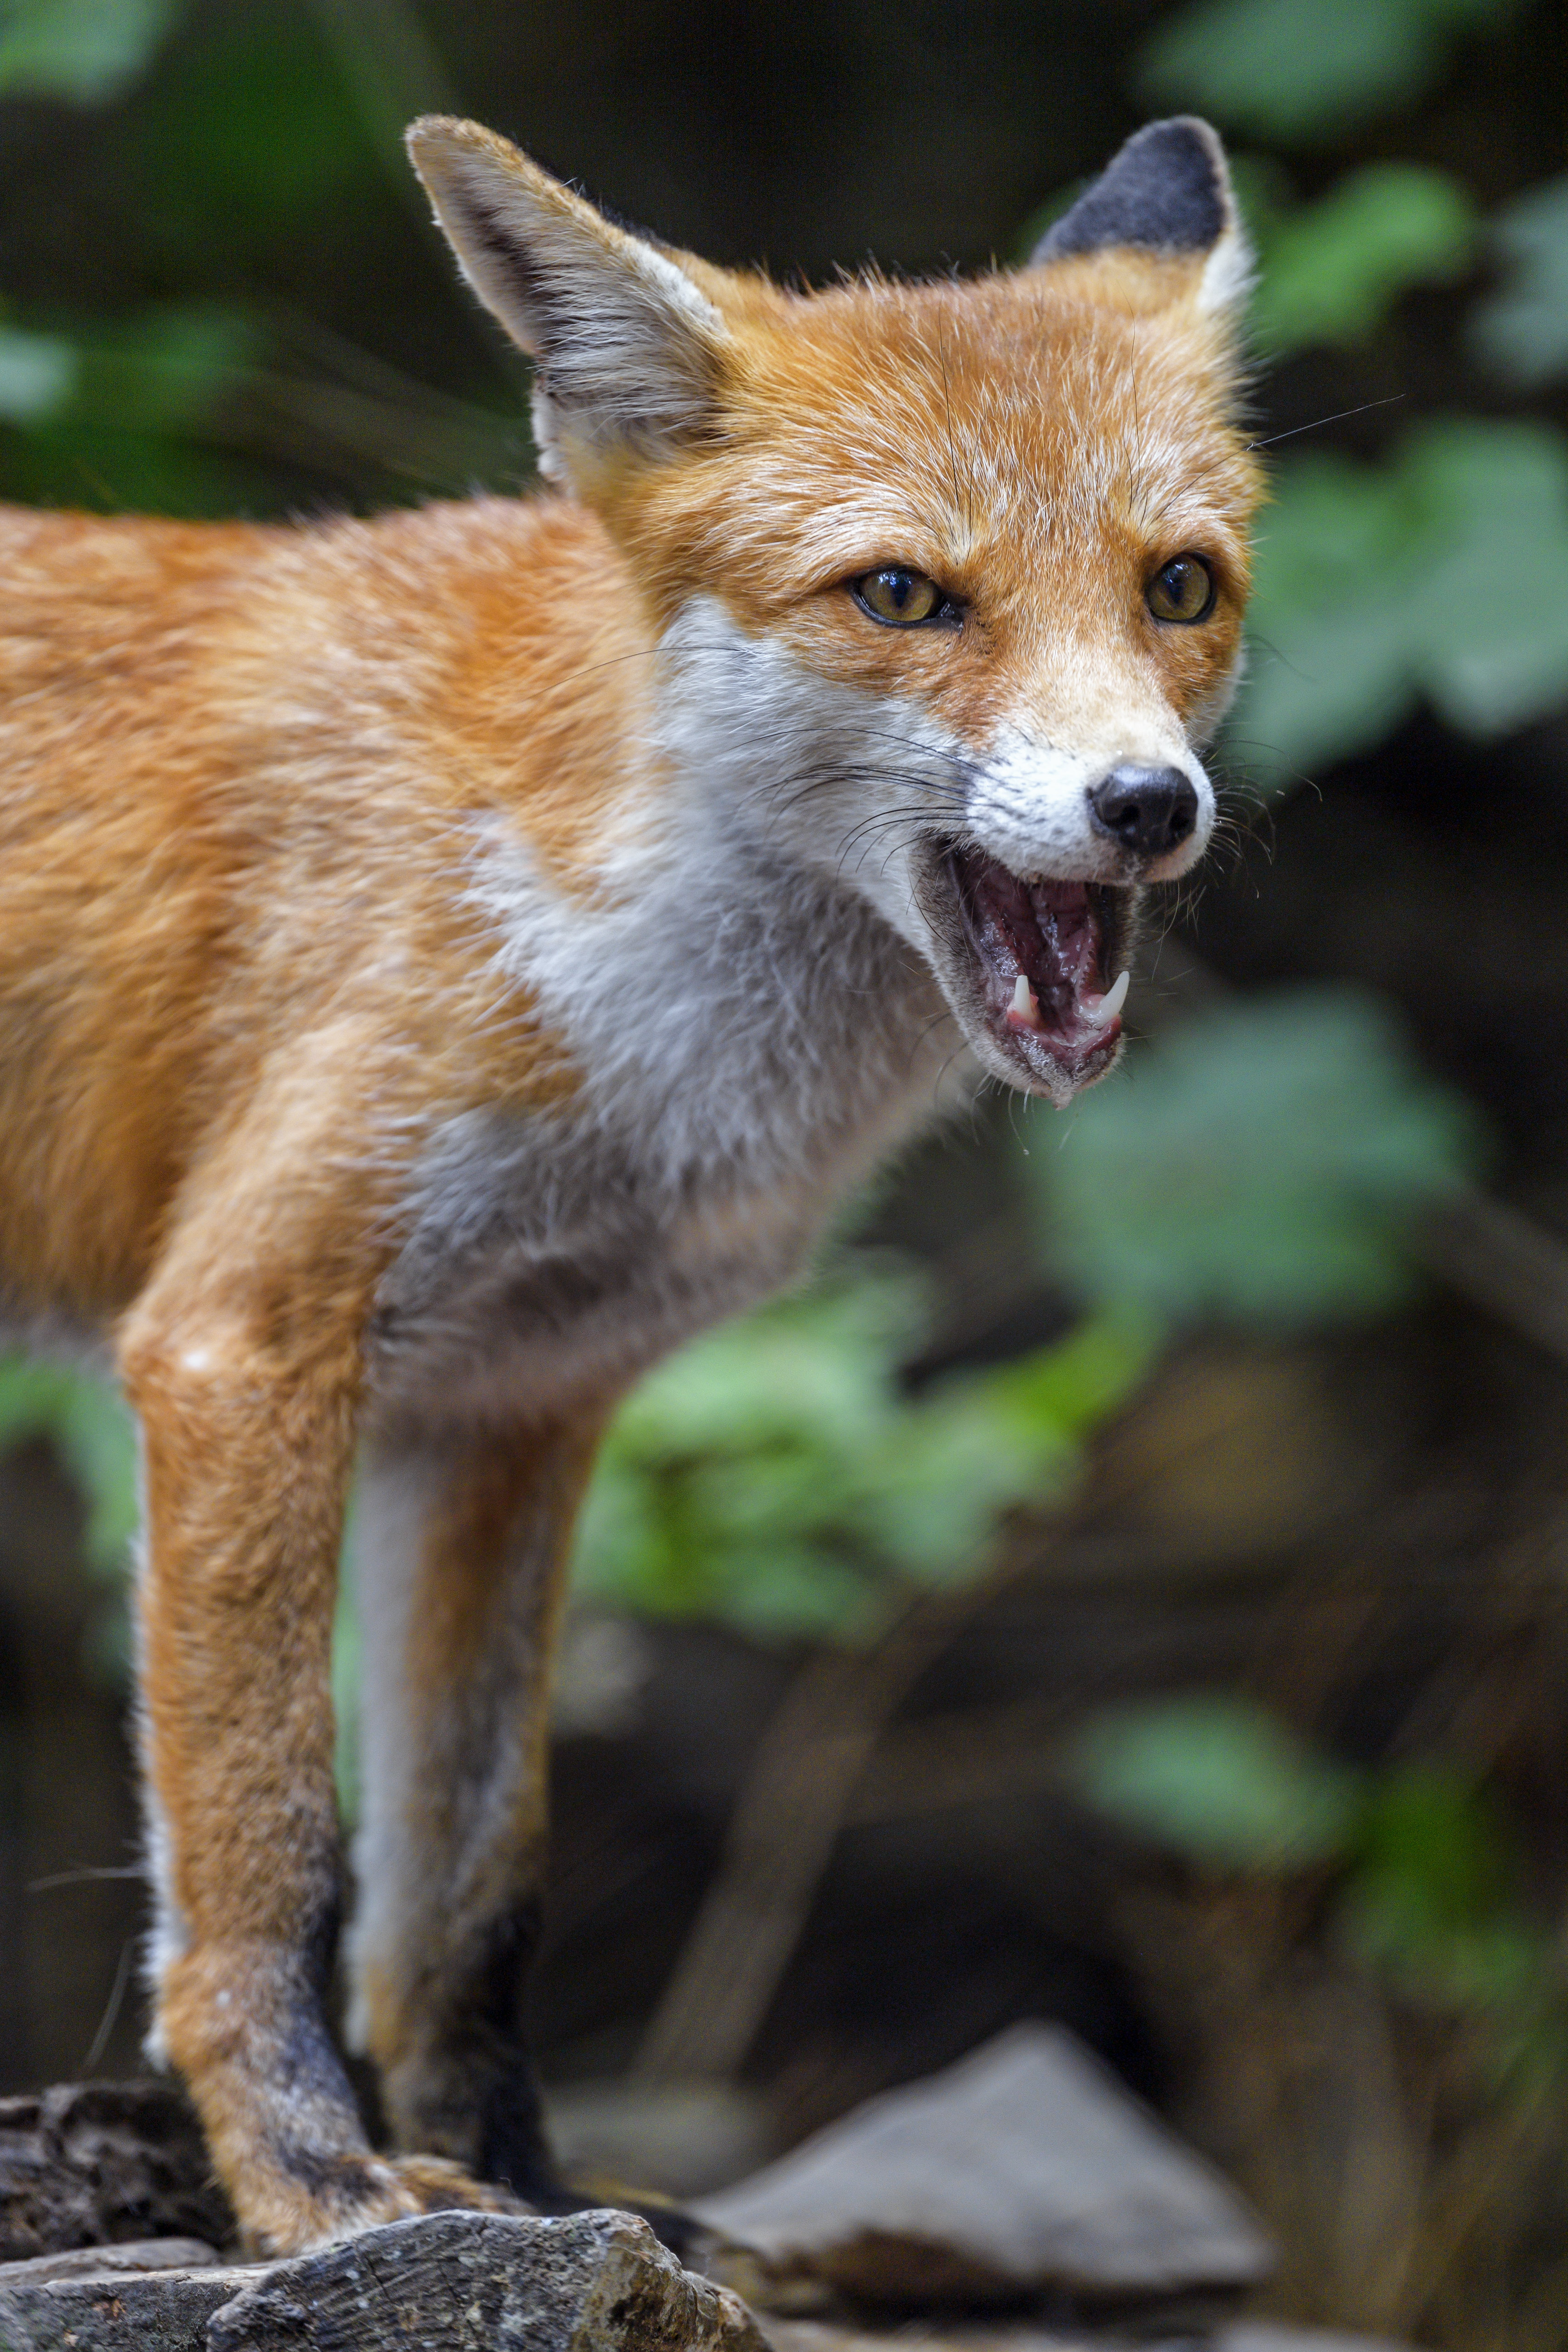 83565 download wallpaper Animals, Fox, Predator, To Fall, Mouth, Muzzle screensavers and pictures for free